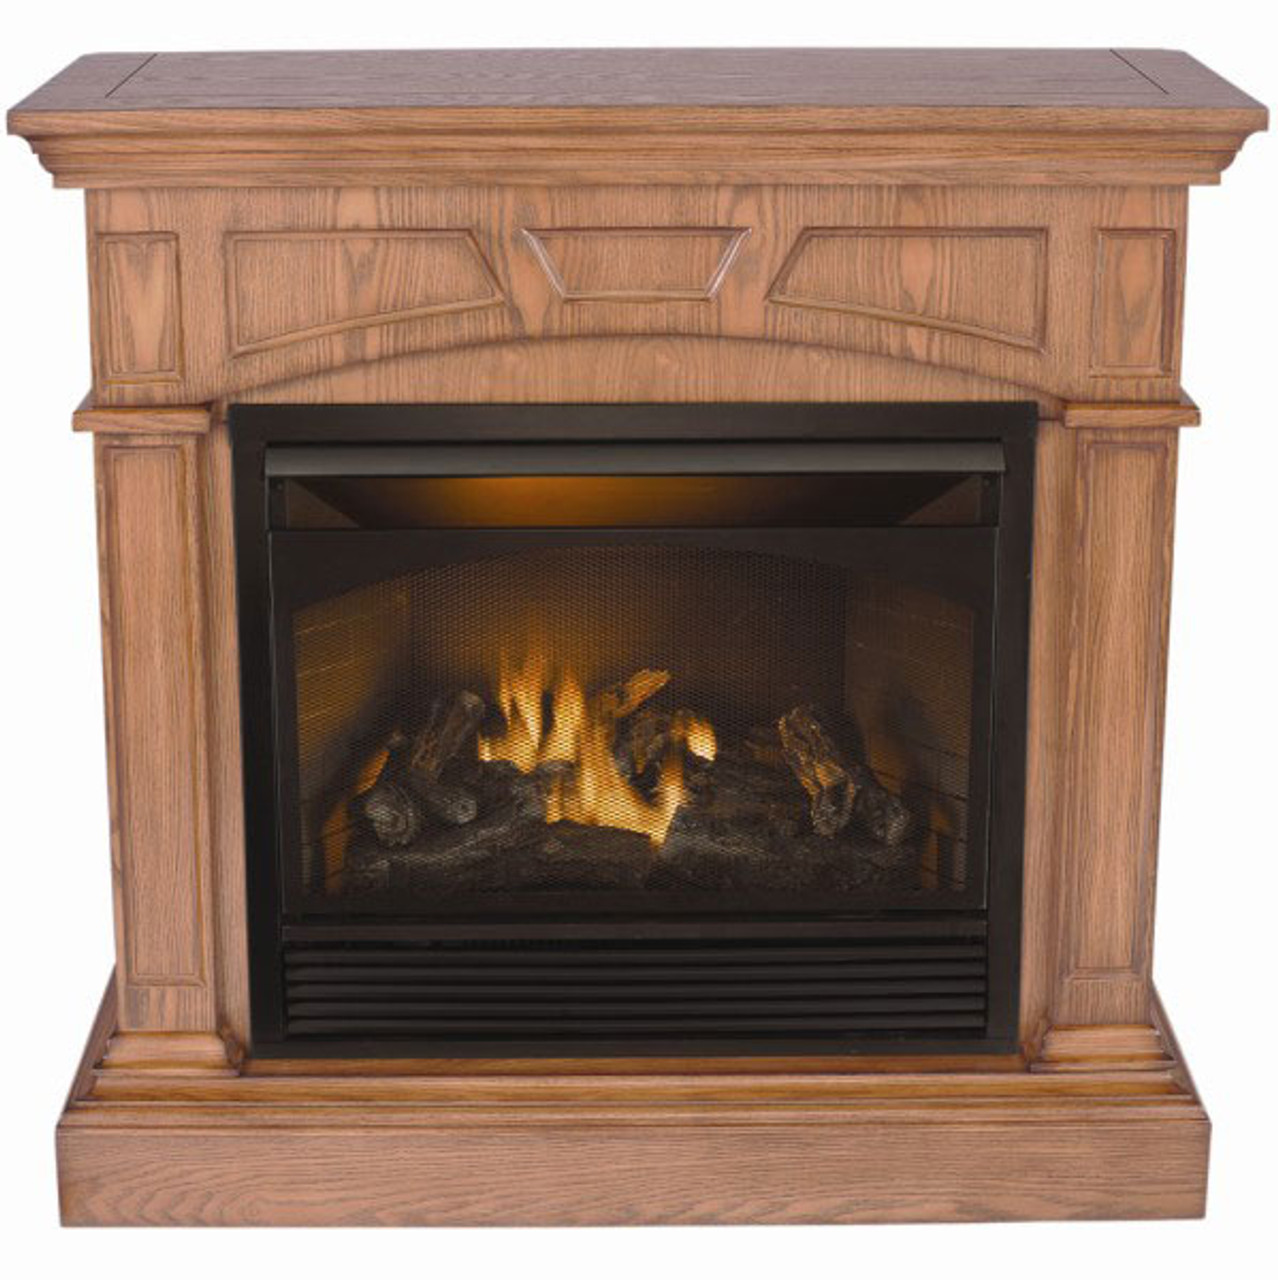 Pro Com Vent Free Gas Fireplace With Oak Cabinet Package